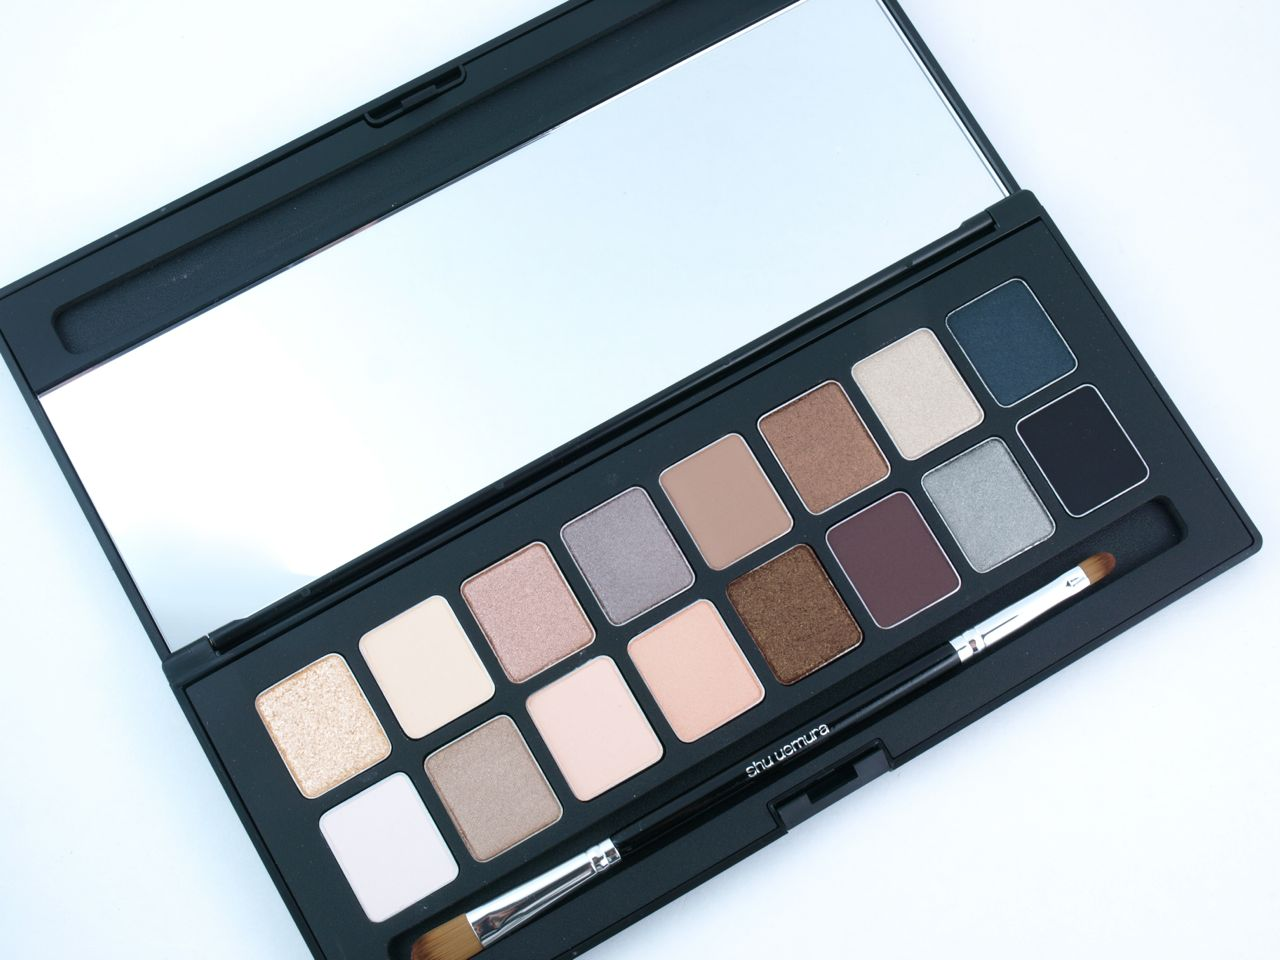 Shu Uemura Shu:Palette 16 Shades of Nude: Review and Swatches